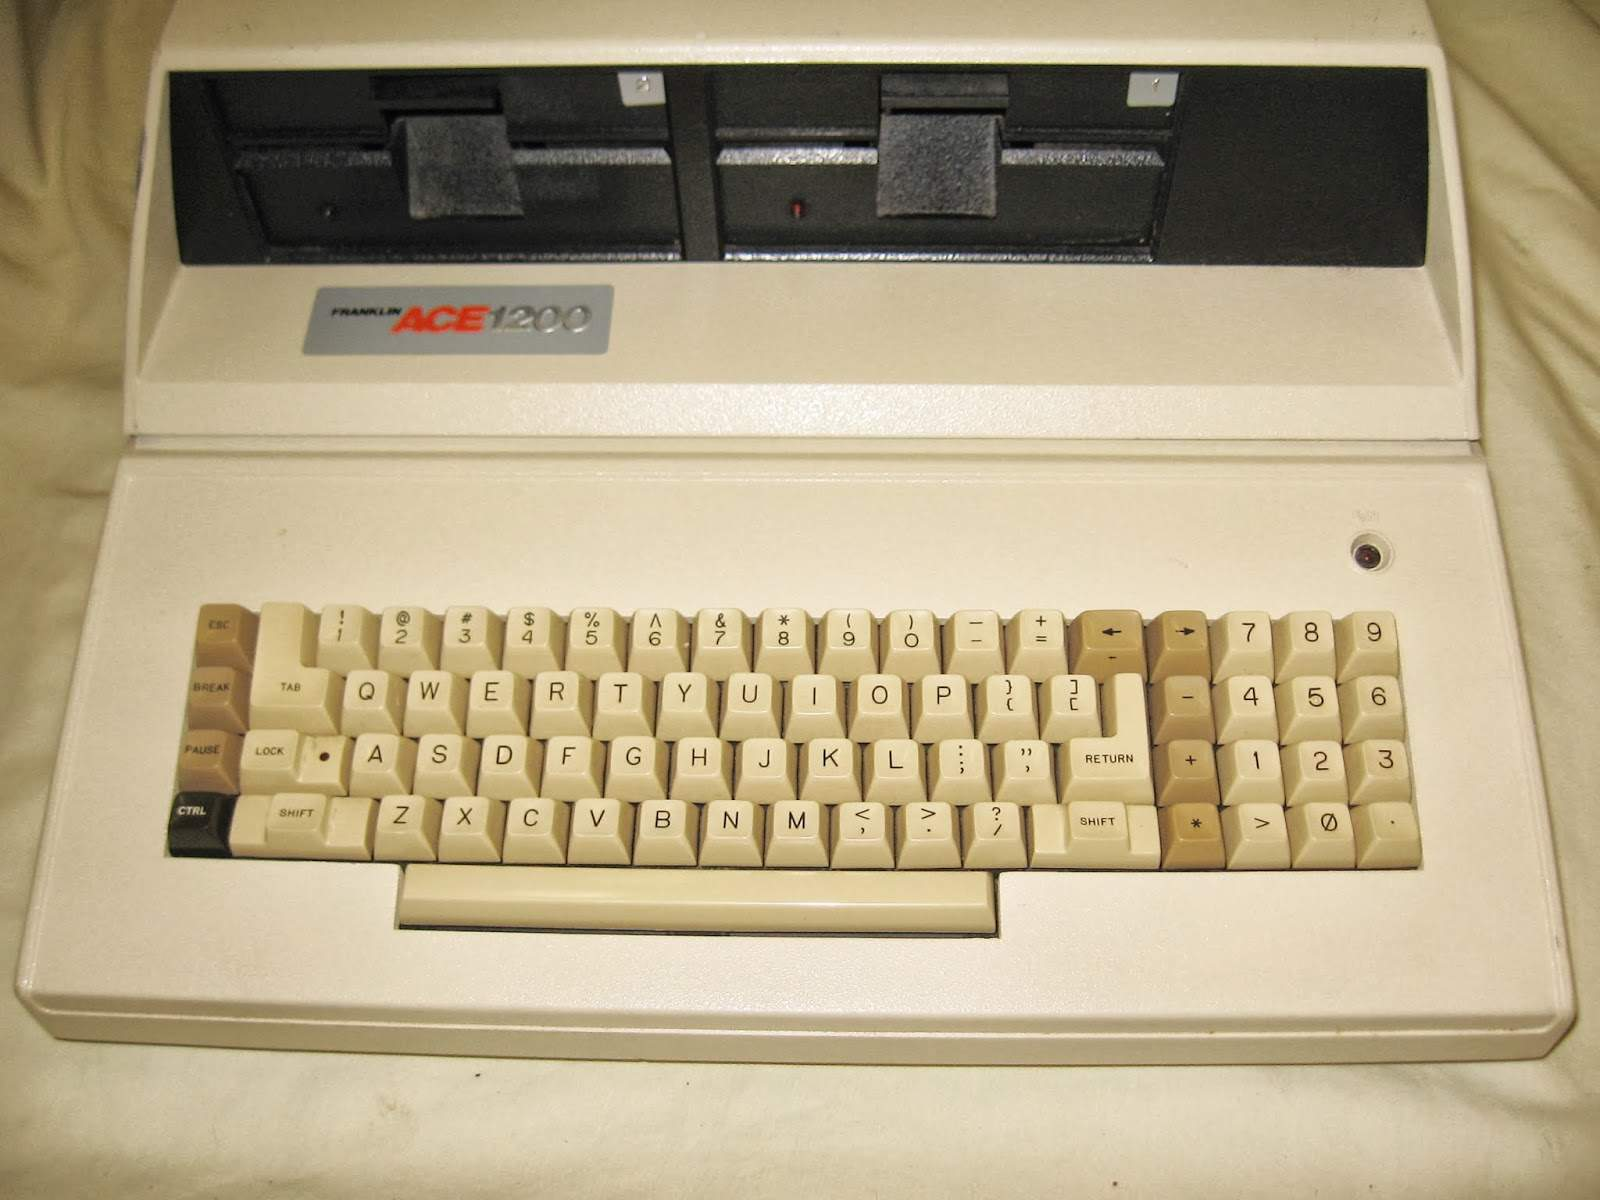 The Franklin Ace 1200 was, in some ways, a literal copy of the Apple II.